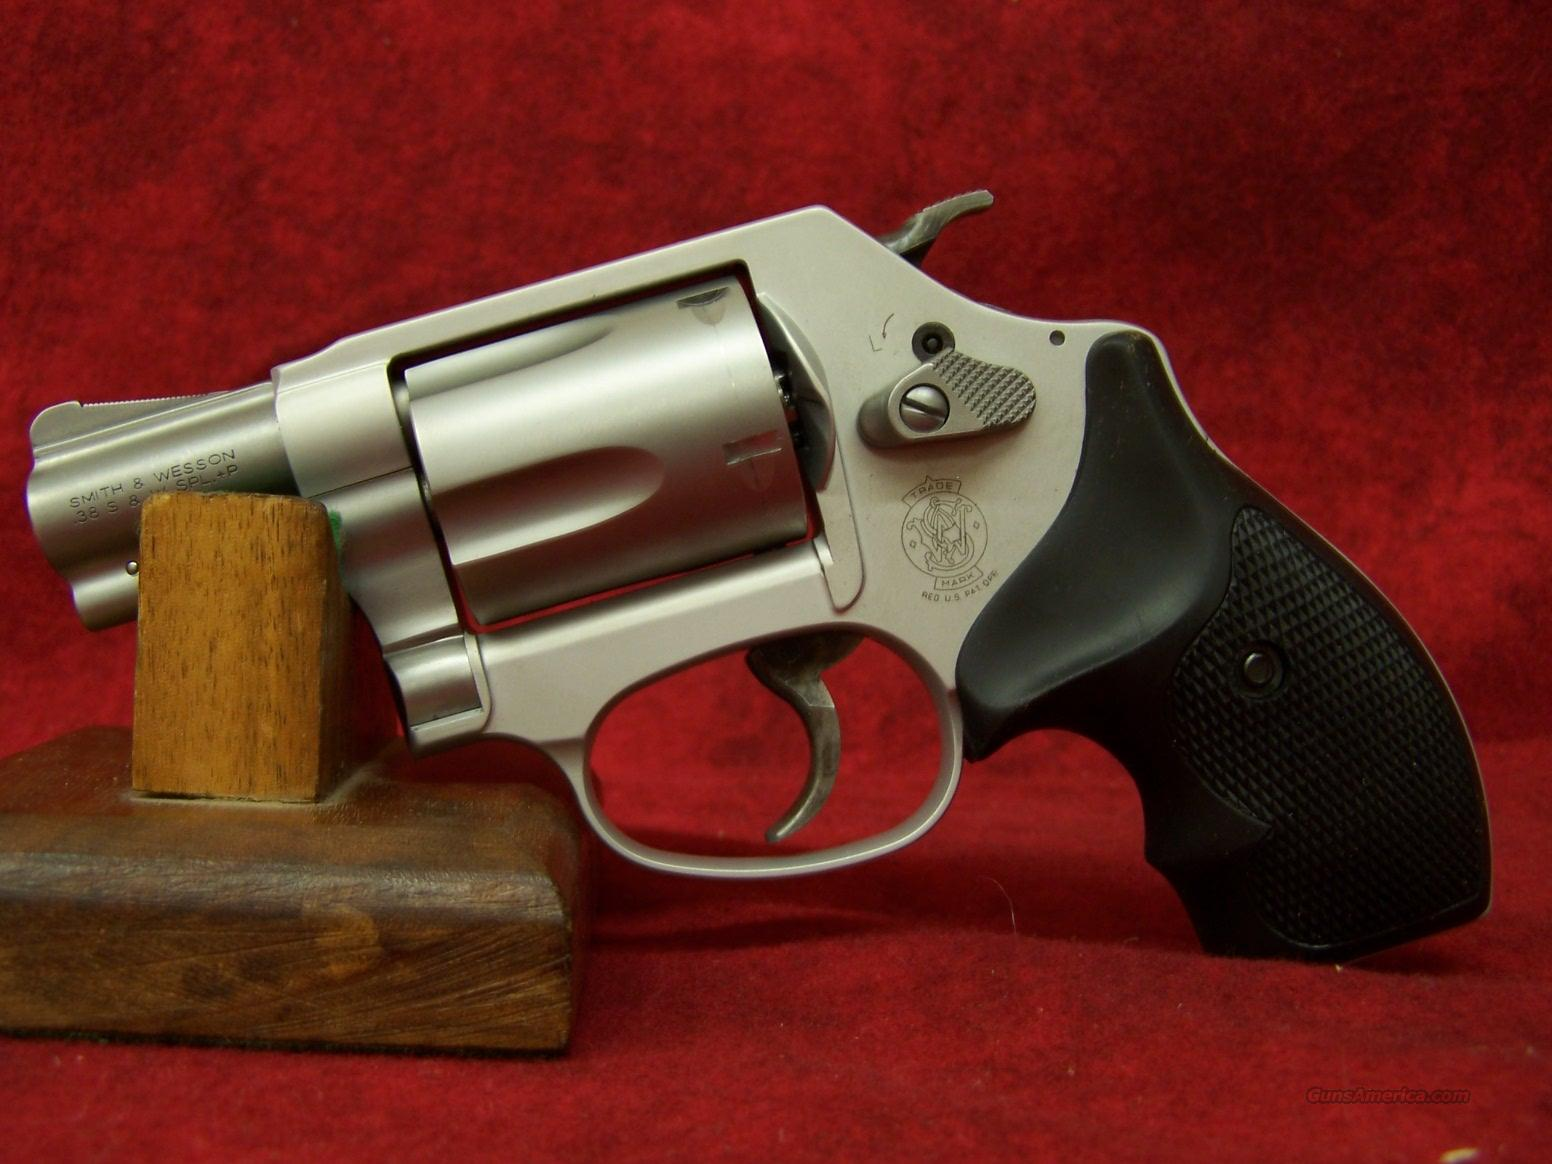 Smith & Wesson 637 Chiefs Special Airweight(163050)  Guns > Pistols > Smith & Wesson Revolvers > Pocket Pistols